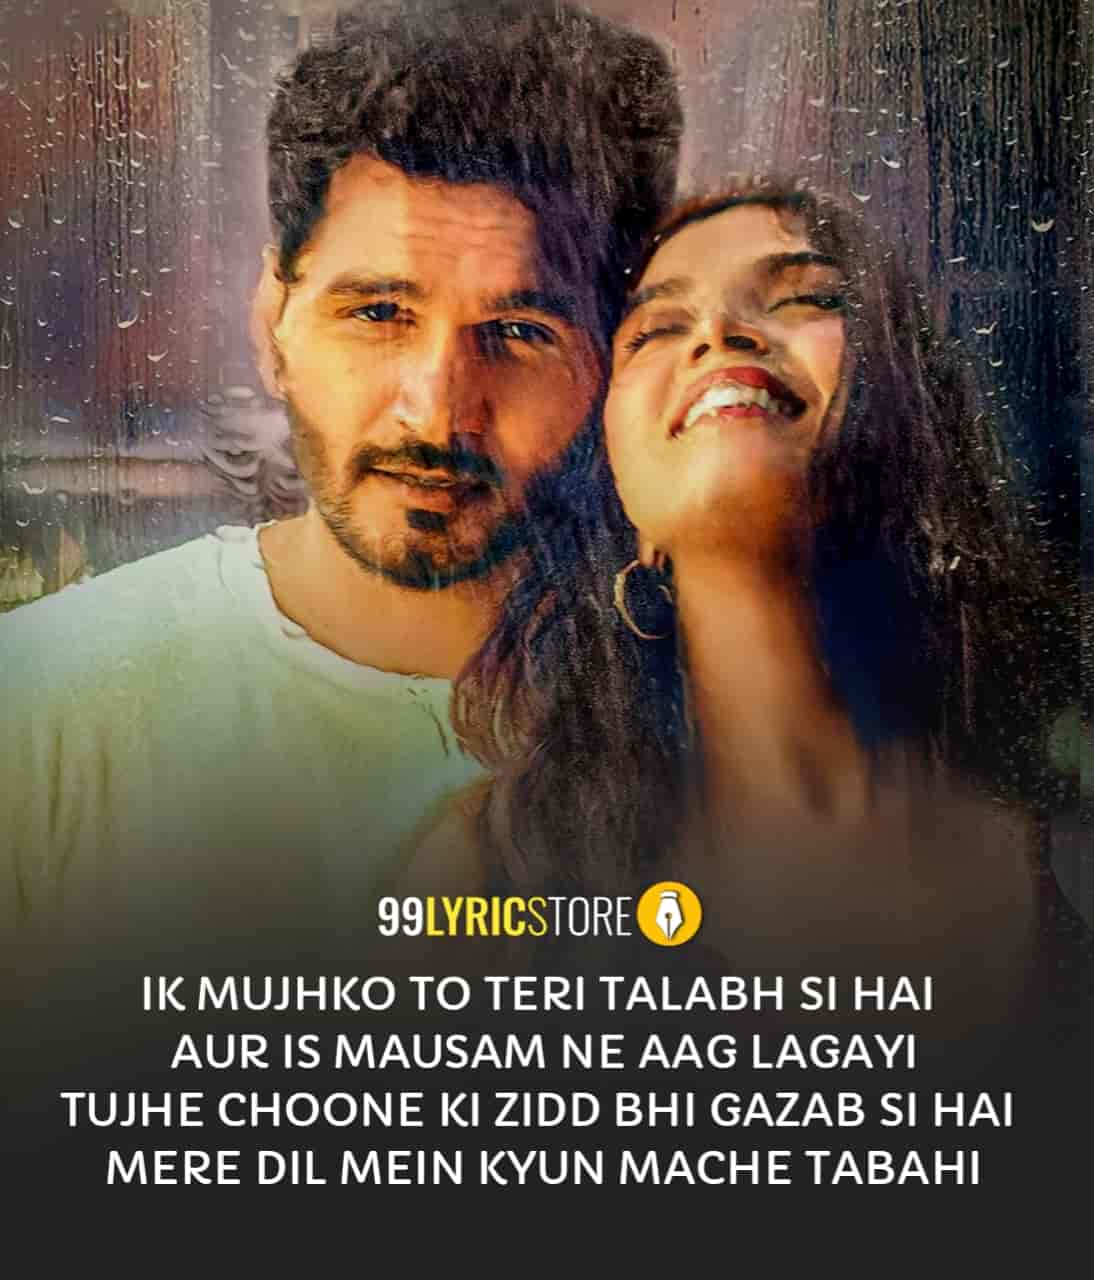 Tere Nashe Mein Choor Hindi Song Image By Gajendra Verma